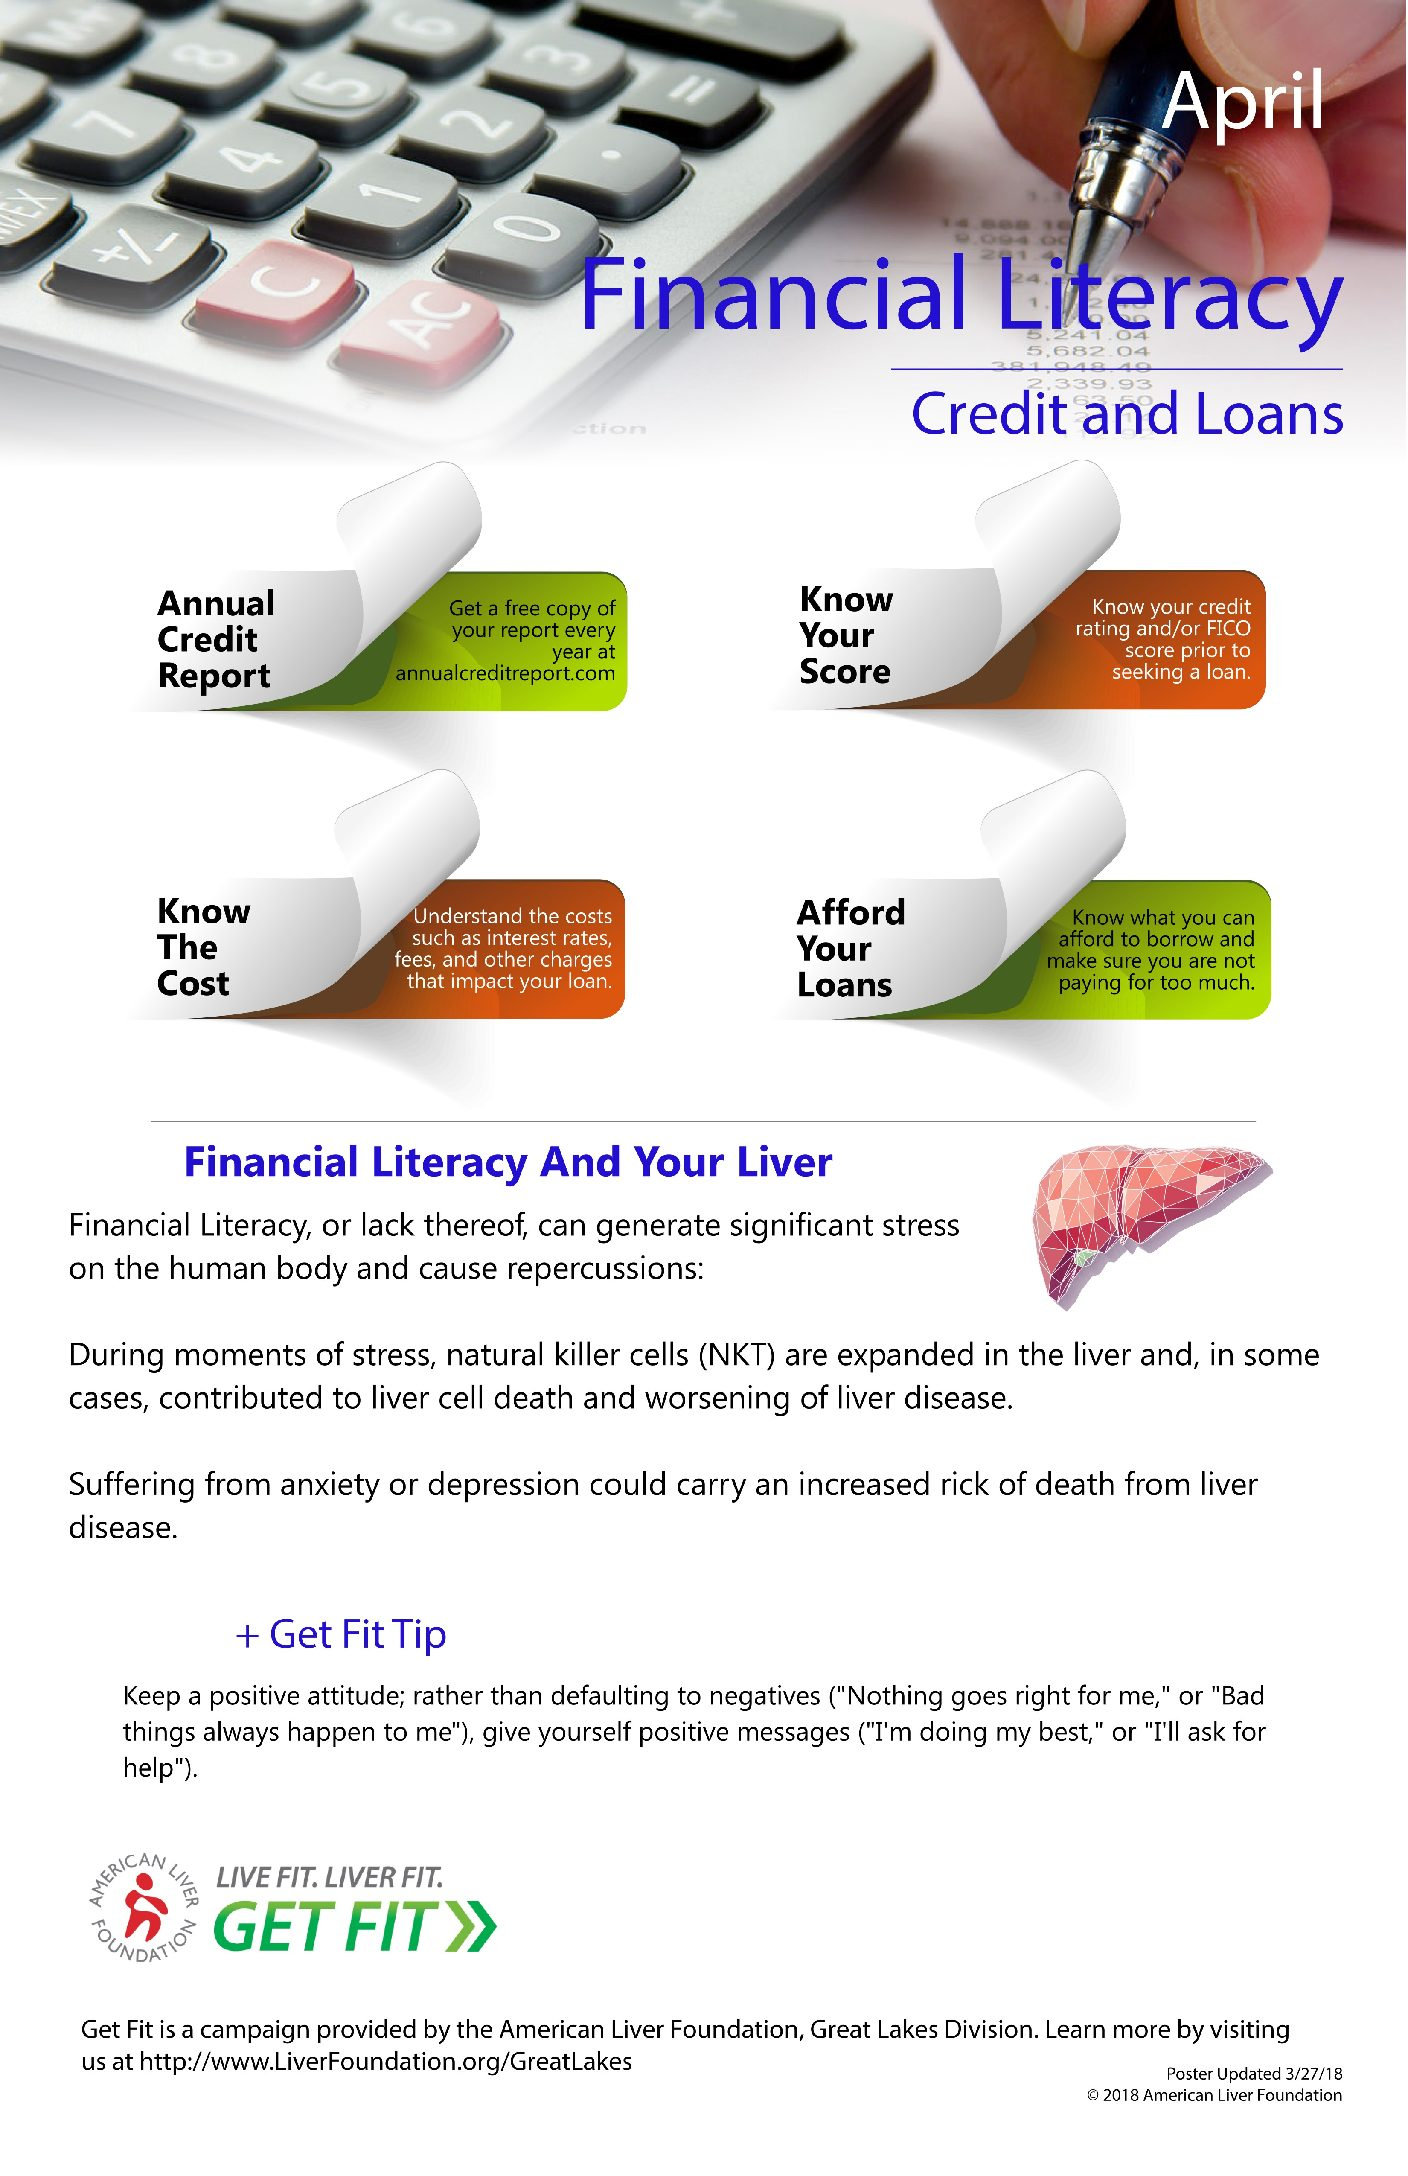 04-03-18-credit-and-loans